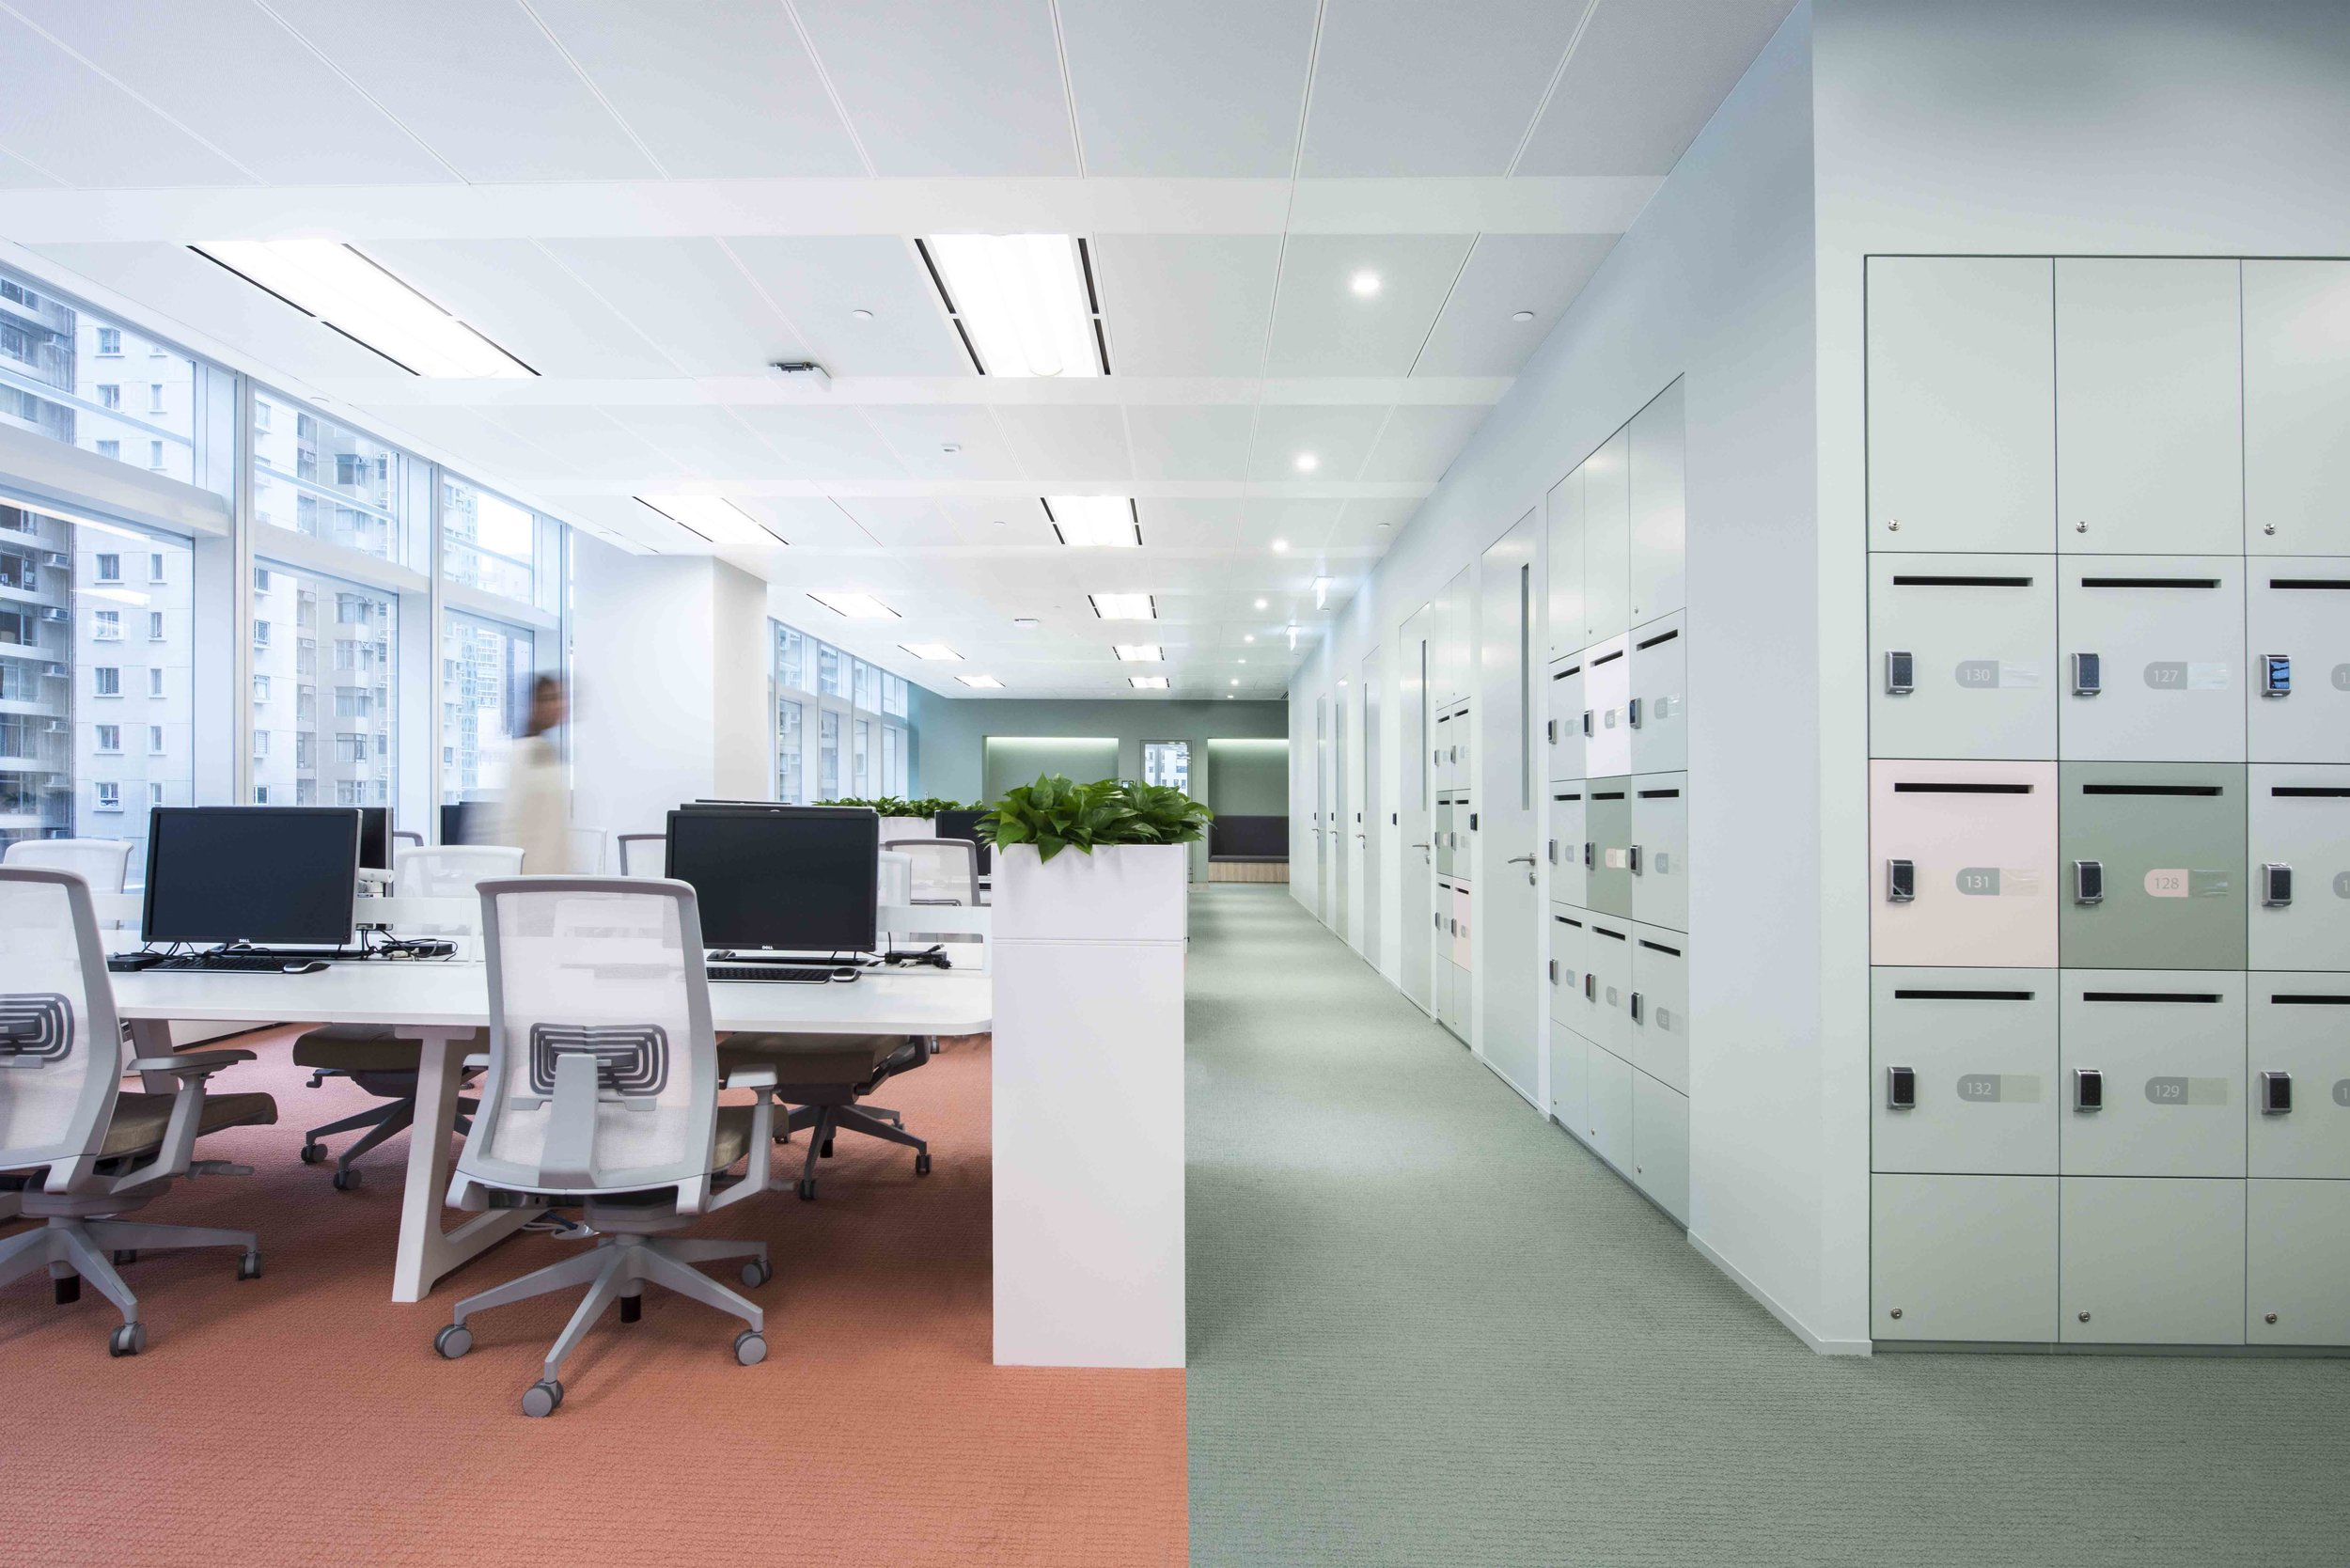 The design responded to the brief by injecting an open plan environment with different zones of activities for socialising, informal collaborations, ergonomic workstation areas, formal private meeting rooms, and various acoustic booths for focused working. The open plan workspace is 100% flexible with a clean desk policy, where employees can use the personal lockers provided in the 'pill' like architectural volumes that form the back drop of the workspace.